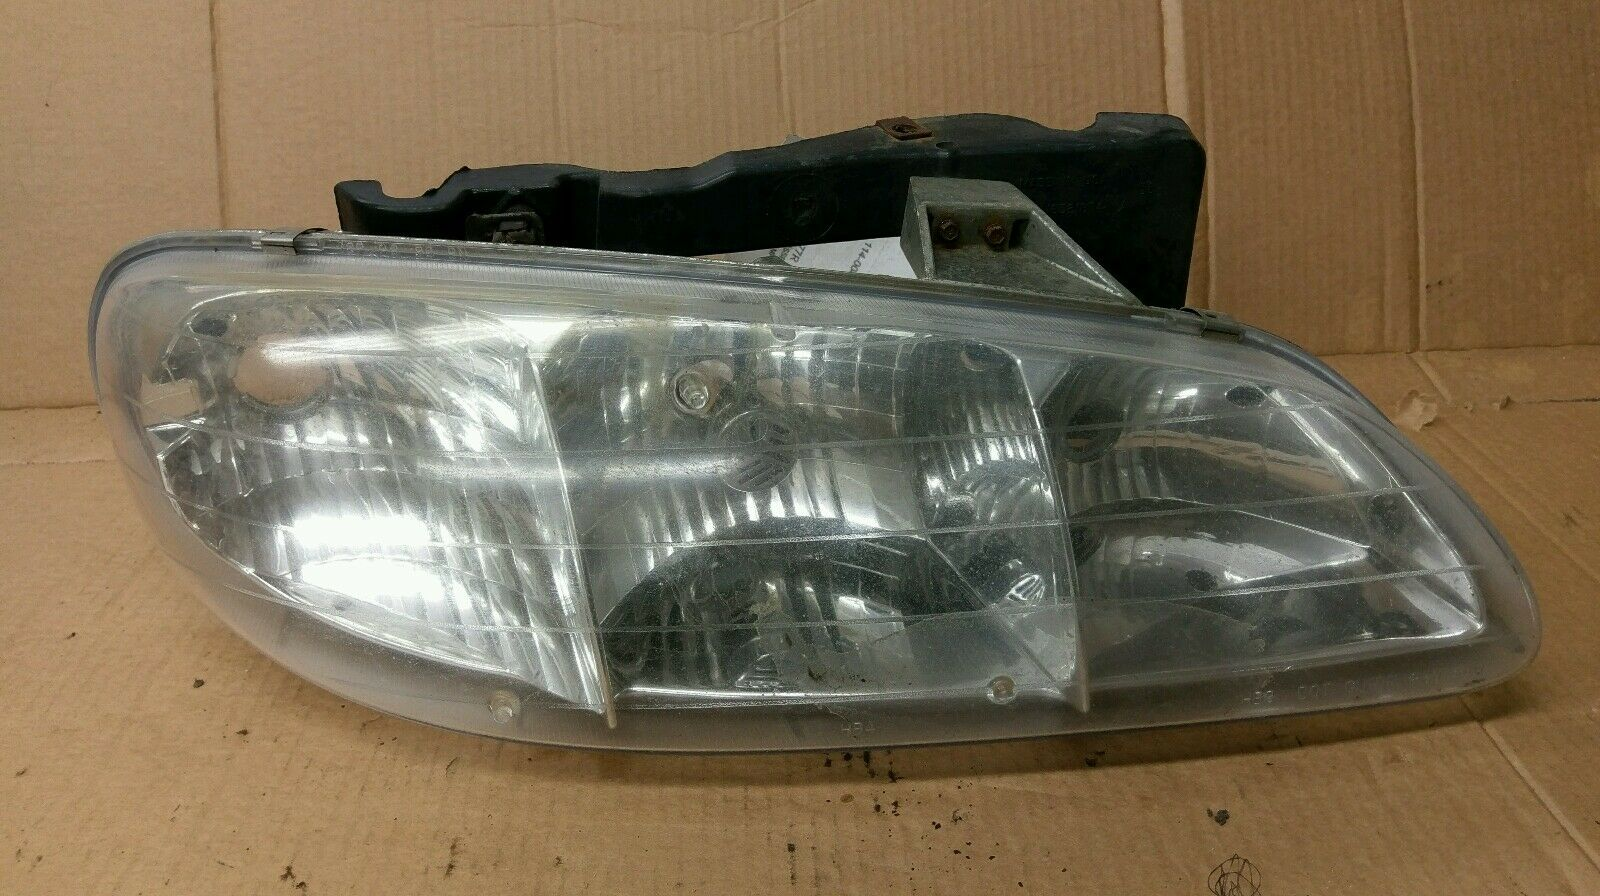 Used Pontiac Headlights For Sale Page 66 1998 Grand Am Right Headlight 114 00477r